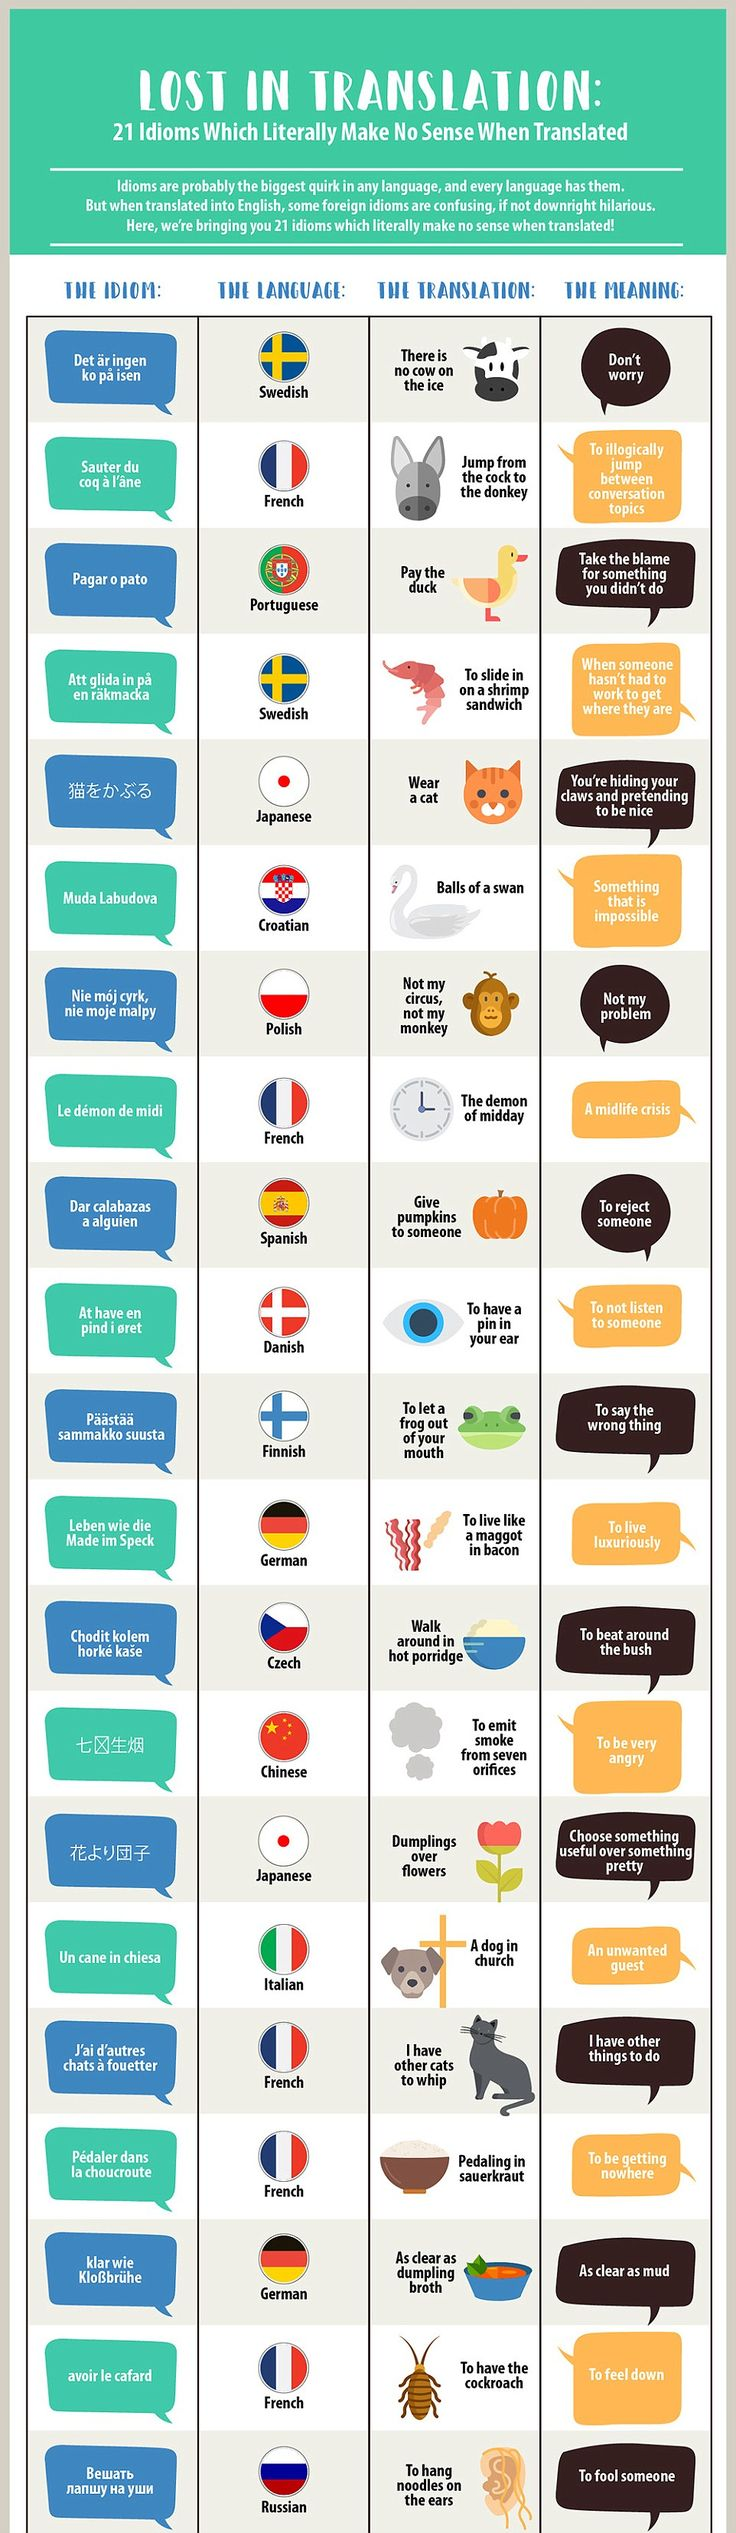 Amusing infographic reveals how foreign idioms translate into English #dailymail